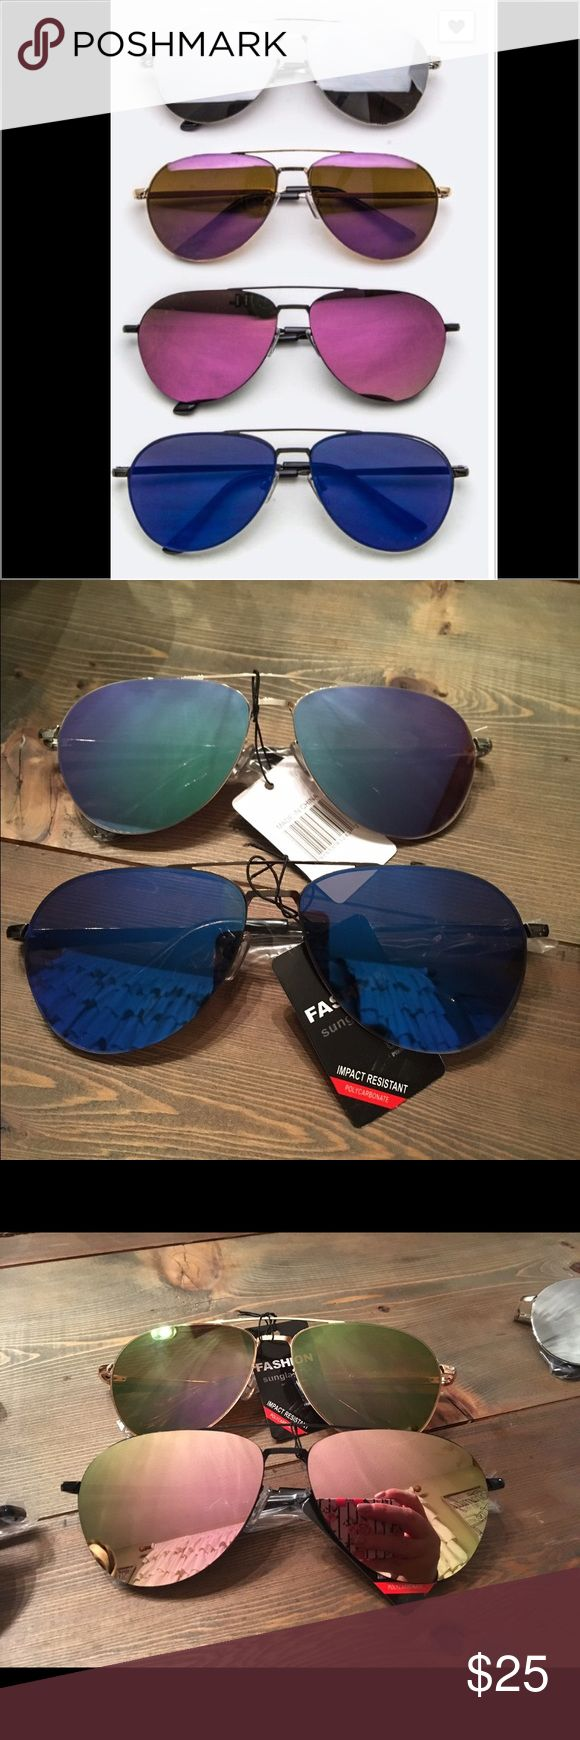 Mirrored Aviator Sunglasses Mirrored aviator sunglasses. Metal frame. 5 colors. Accessories Sunglasses